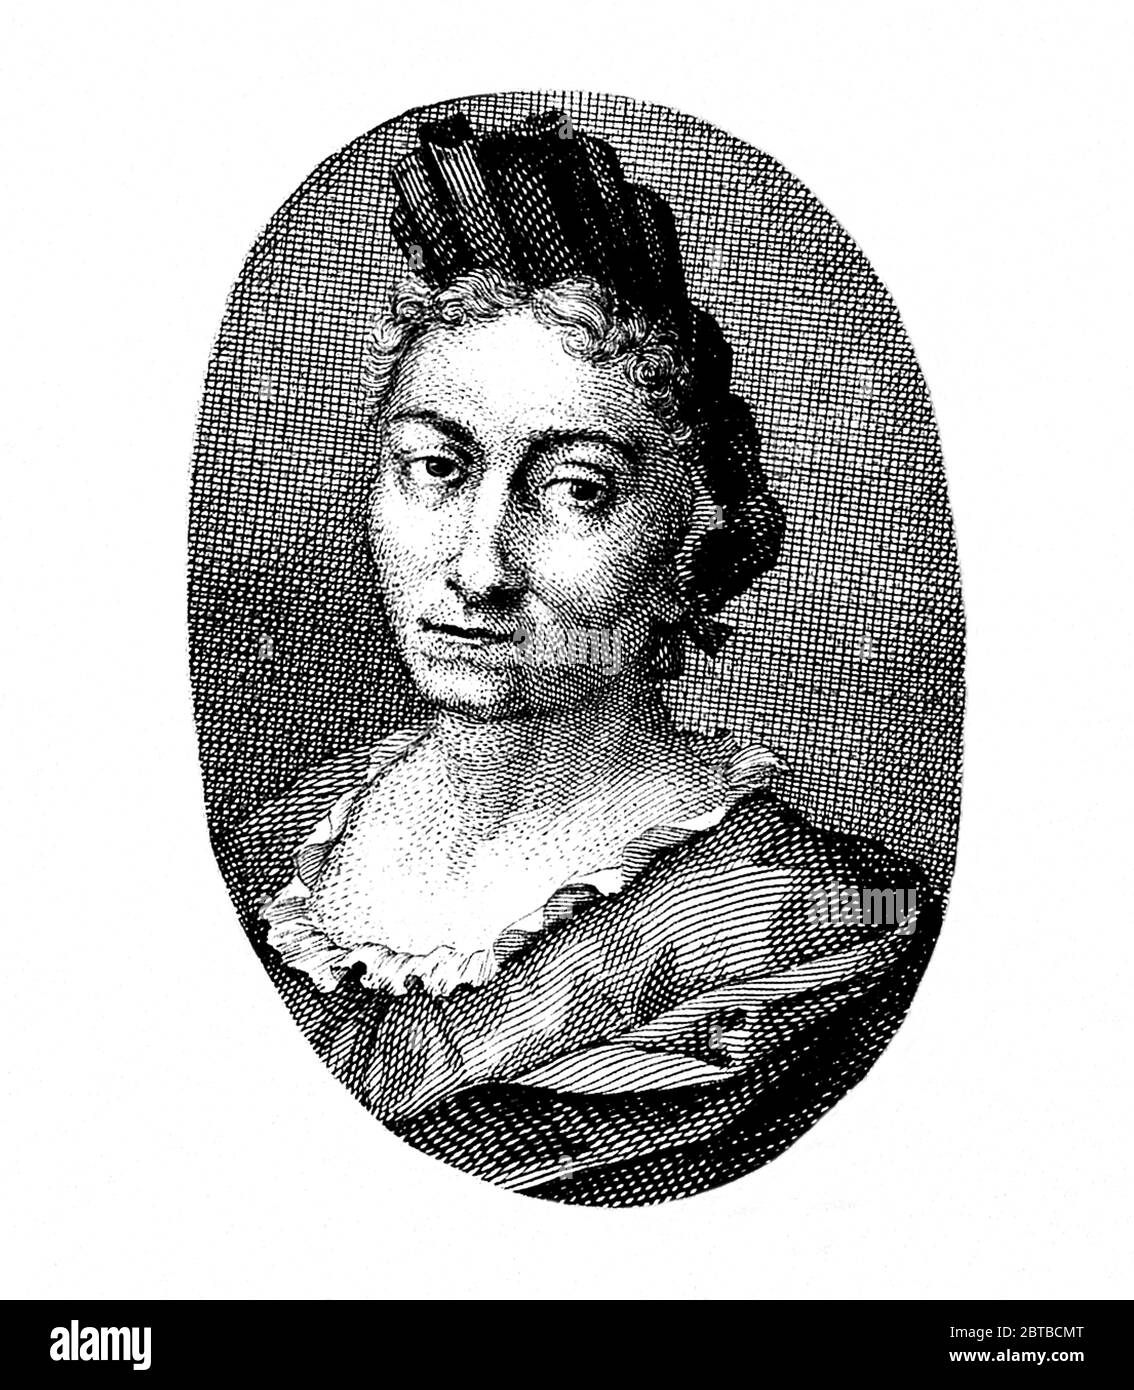 1700 c, GERMANY : The german naturalist woman painter , scientific illustrator and biologist MARIA SIBYLLA MERIAN ( 1647 - 1717 ). Sybylla's father was the Swiss engraver and pubblisher Matthäus Merian ( Matthew , 1593 - 1650 ) the Elder . Portrait by unknown engraver . - SYBILLA - HISTORY - foto storica storiche - portrait - ritratto - NATURALISTA - NATURALIST - SCIENZA - SCIENCE - BIOLOGY - BIOLOGIA - illustratrice - illustratore - illustrator - woman painter - pittrice - pittura - painting - ARTE - ARTS - ART - illustration - illustrazione - incisione - engraving ---- Archivio GBB Stock Photo